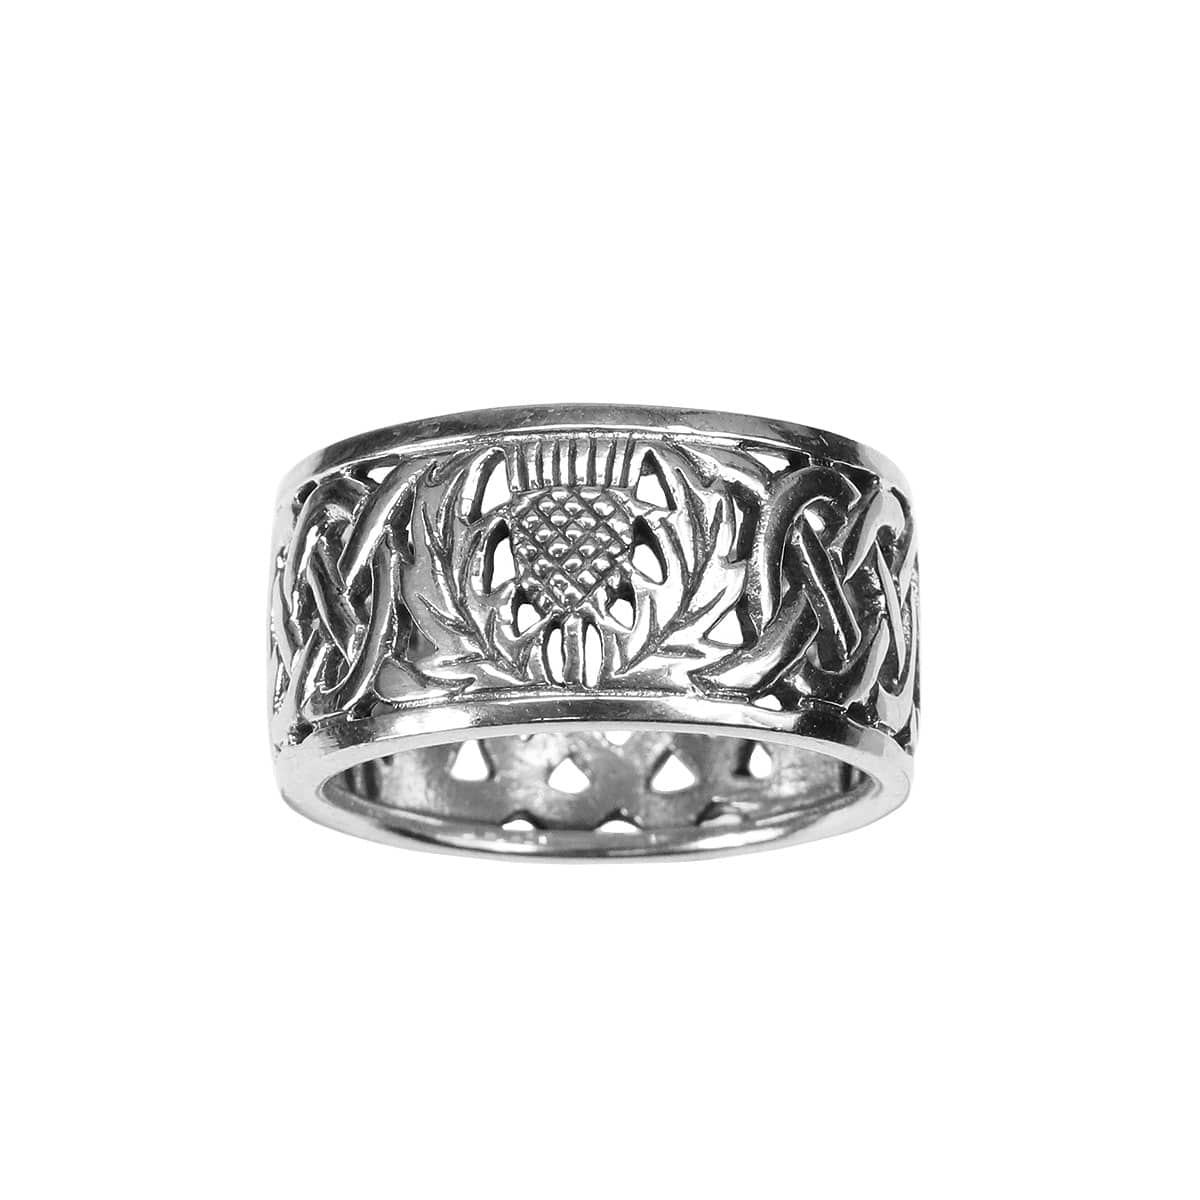 Elegant Sterling Silver Ring With Celtic Thistle Knot Design